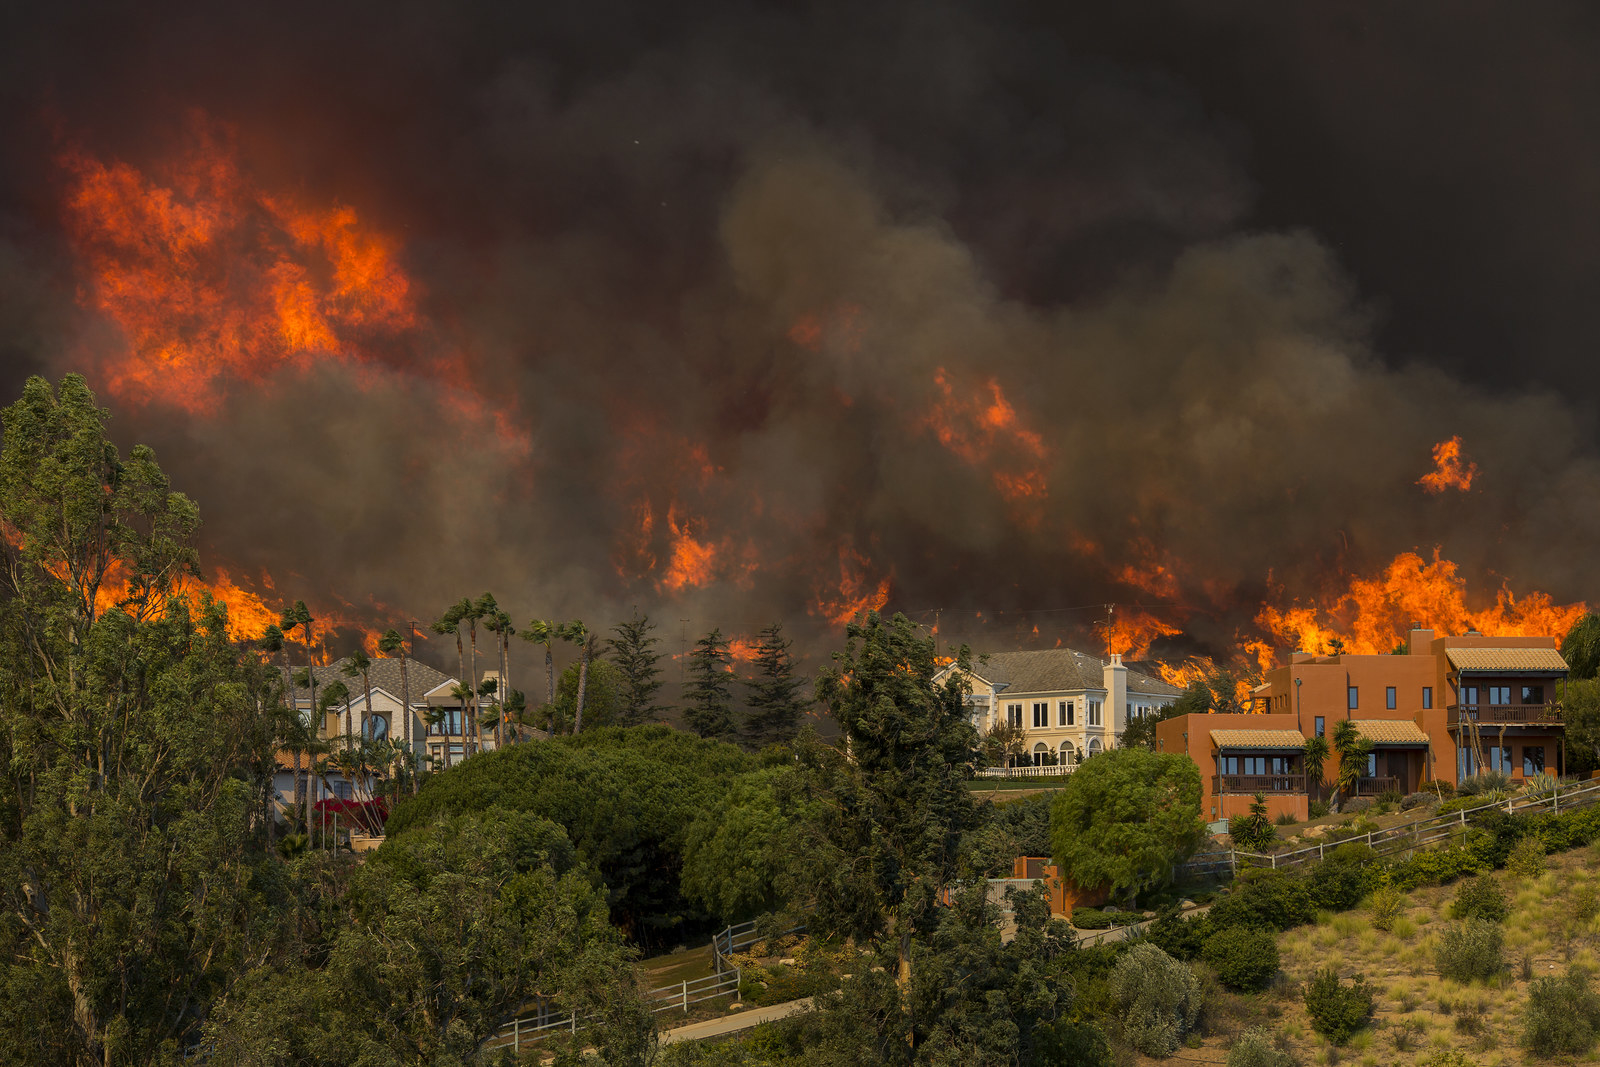 As Flames Licked Dangerously Close To Their Homes, Some Malibu Residents Refused To Leave